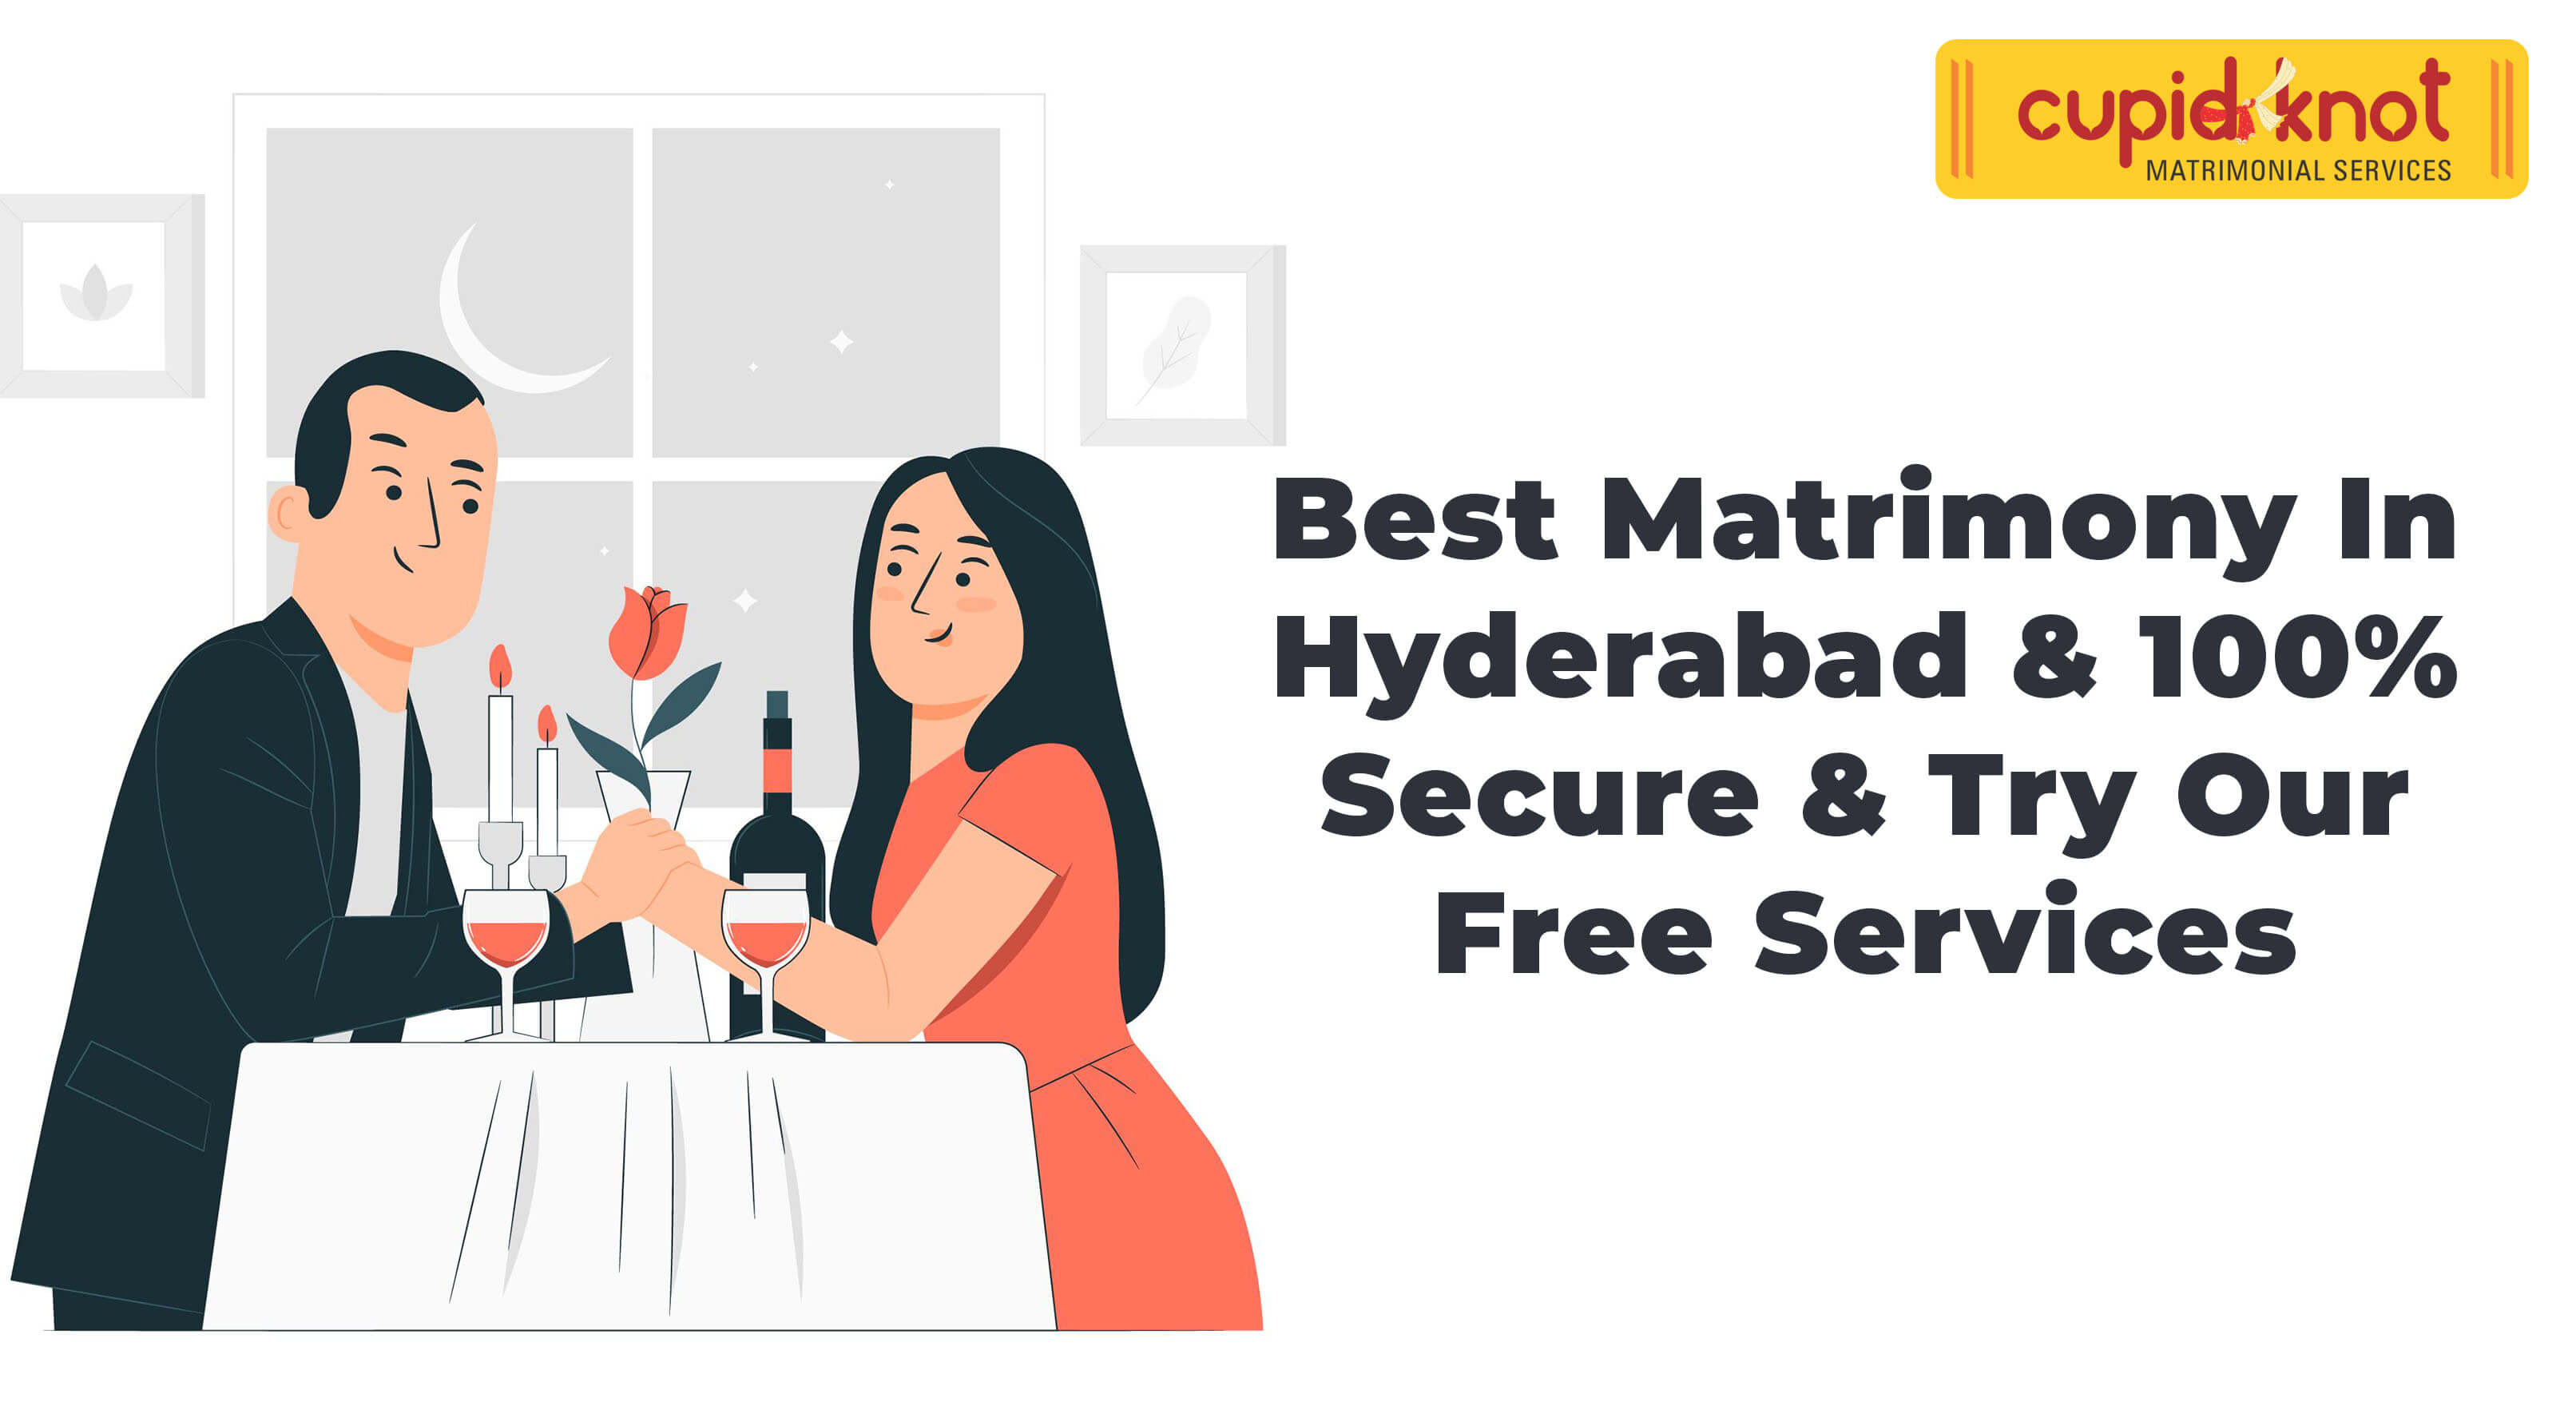 Best Matrimony in Hyderabad & 100% Secure & Try Our Free Services